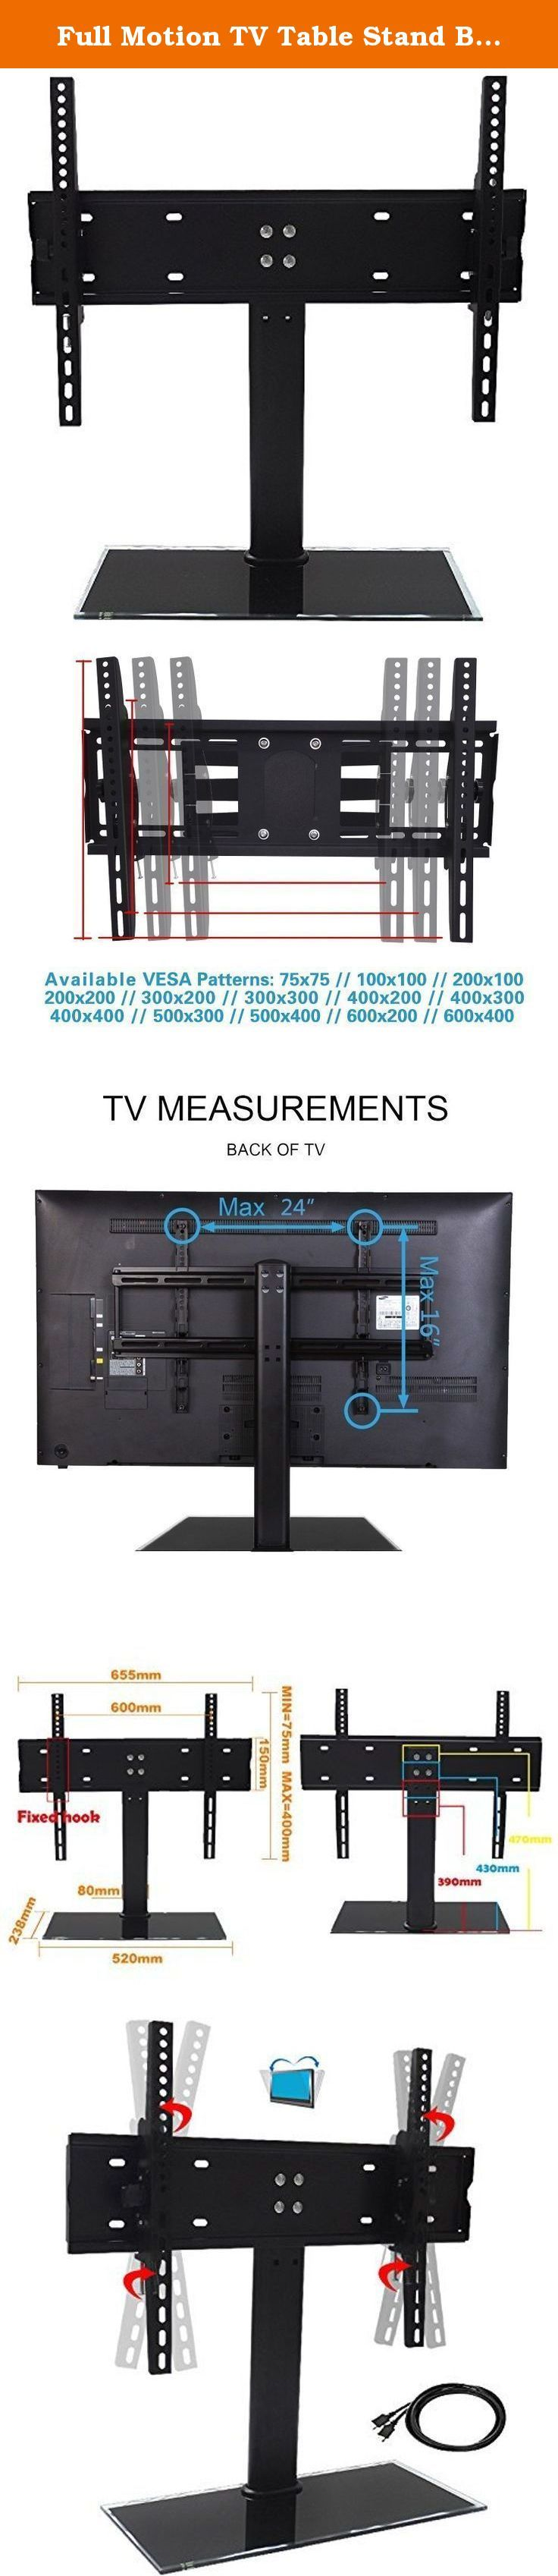 """Full Motion TV Table Stand Bracket for 17"""" - 55"""" Plasma, LCD and LED Flat Screen Monitor up to 78lb. Description This mount fits most of 22""""-55""""(some up to 60"""") TVs sold today. It fits TVs with mounting holes as close as 3""""X3"""" or as wide as 24""""x16"""" (in TV terms - VESA 100x100mm to 600x400mm). Specifically, it fits VESA 75X75mm, 100X100mm, 200X100mm, 200X150mm, 200X200mm, 300X200mm, 300X300mm, 400X200mm, 400X300mm, 400X400mm, 600x400mm Package Contents: 1 x Tv stand 1 x Hardware kit 1 x…"""